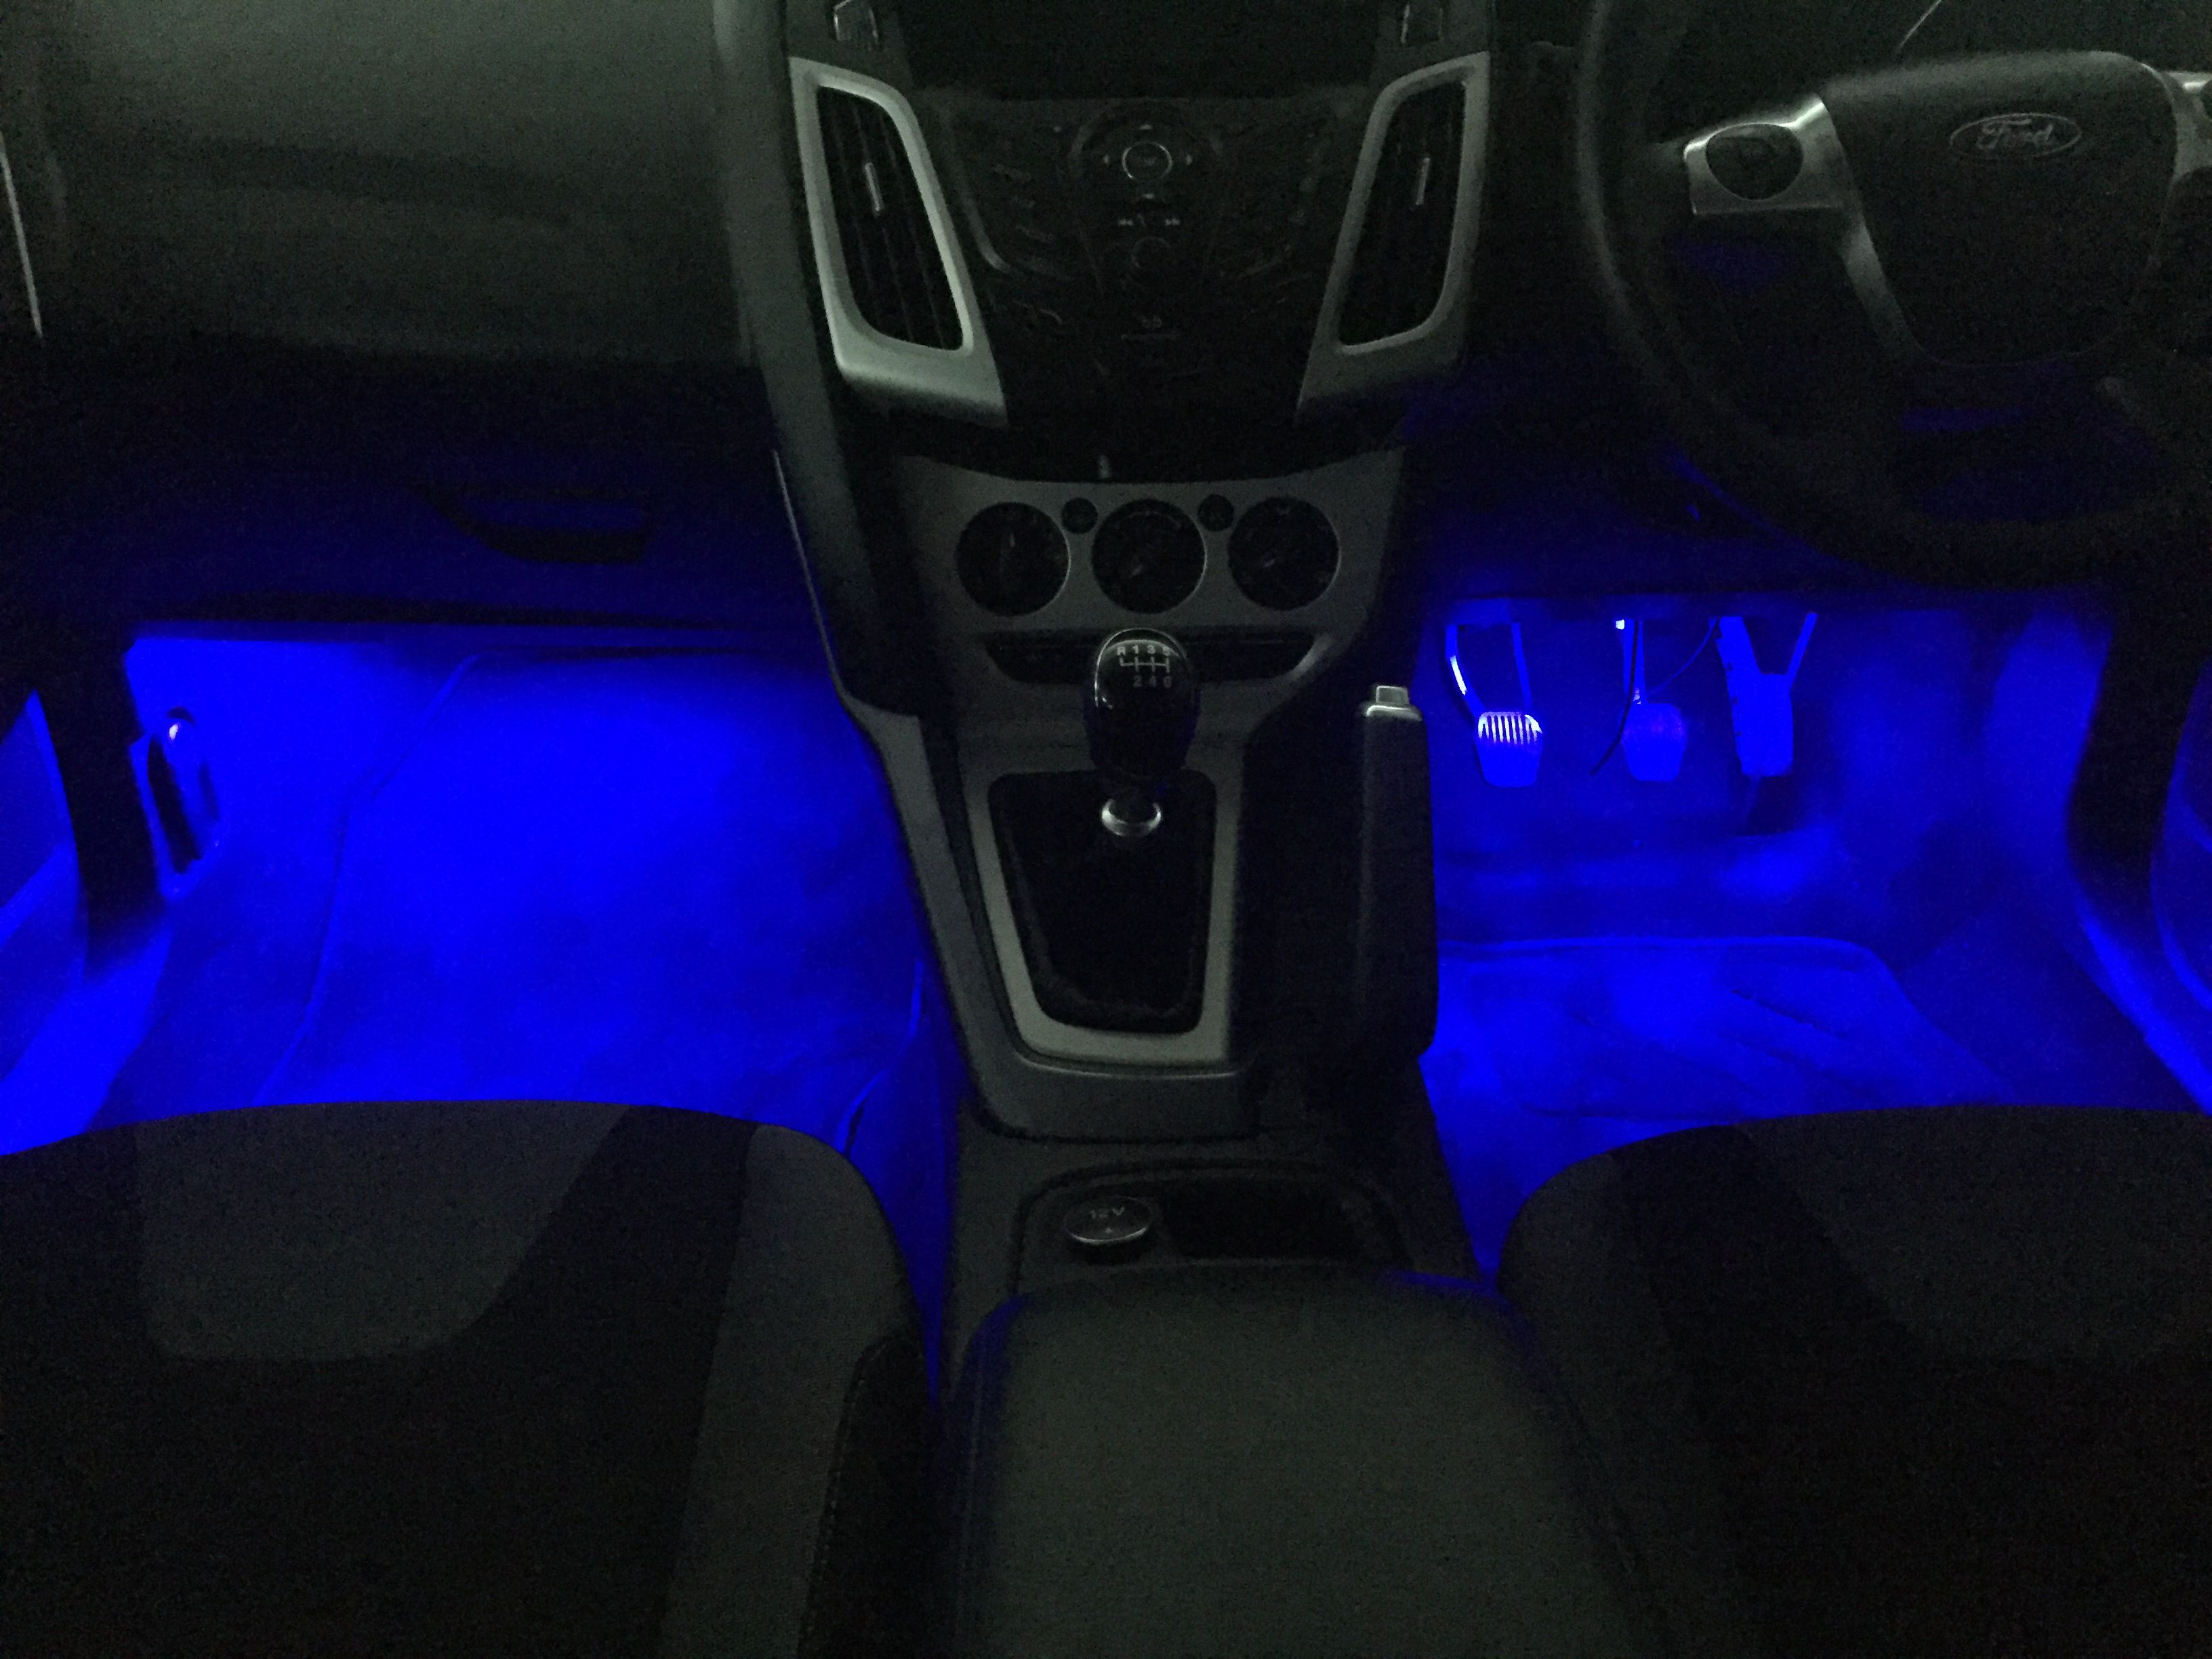 2012 Ford Focus Just In For Footwell Lights Installed On A Manual